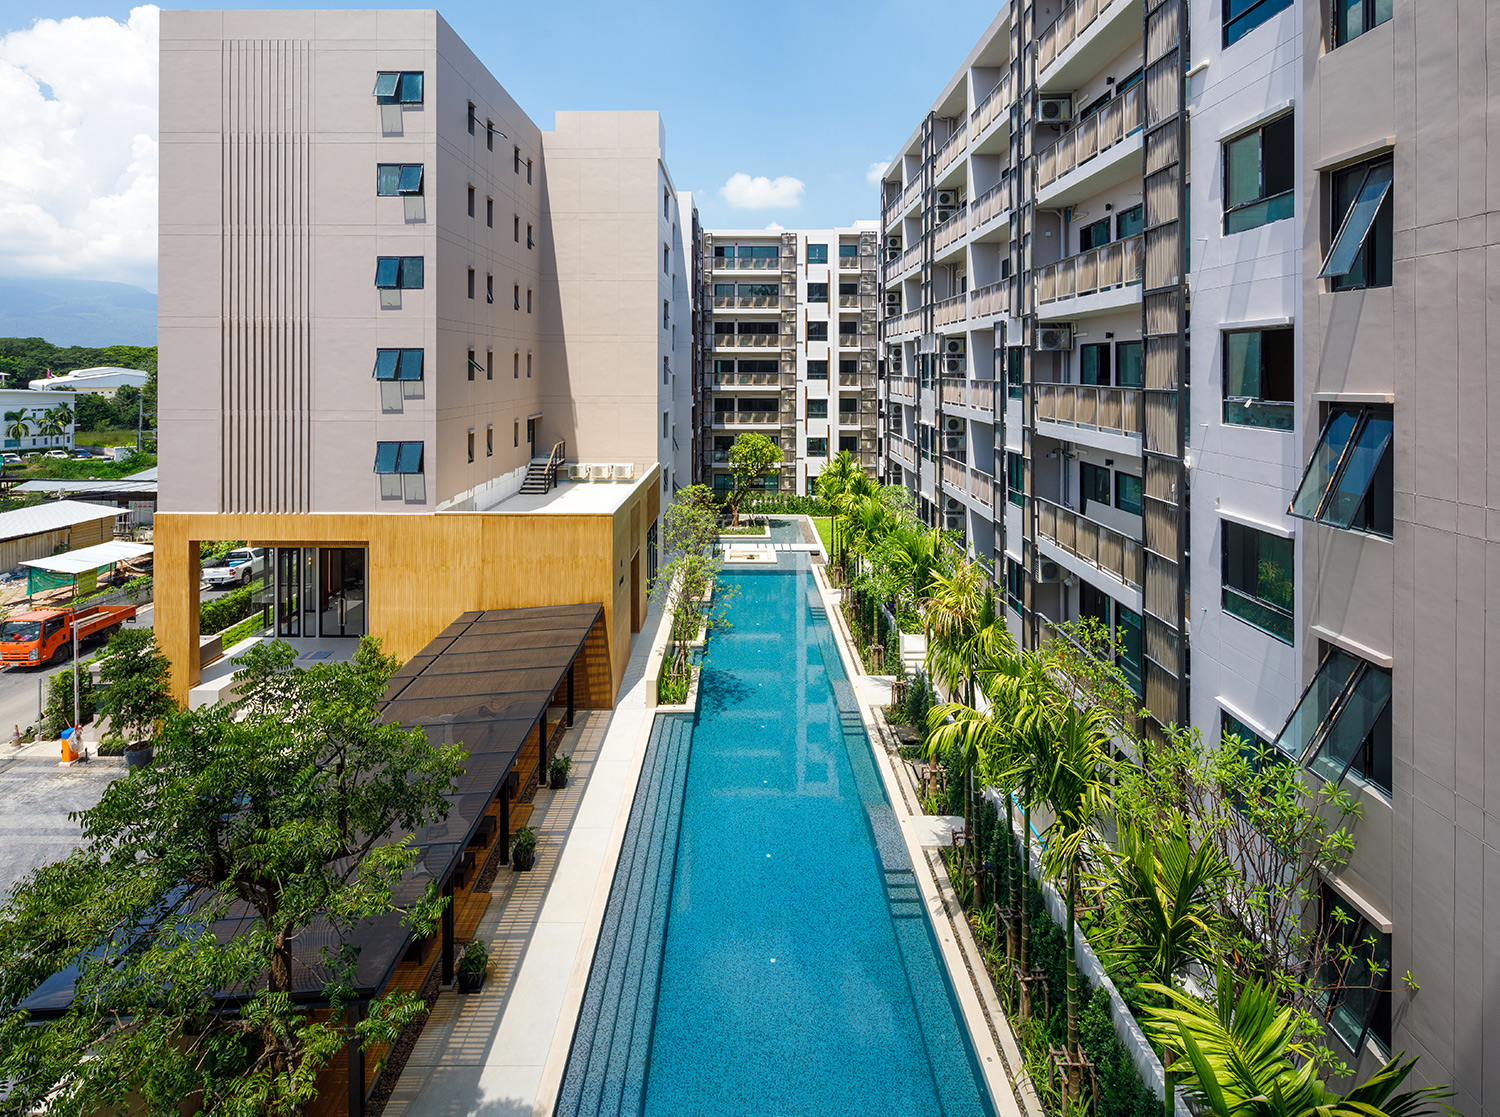 Condo The issara chiangmai-Overview